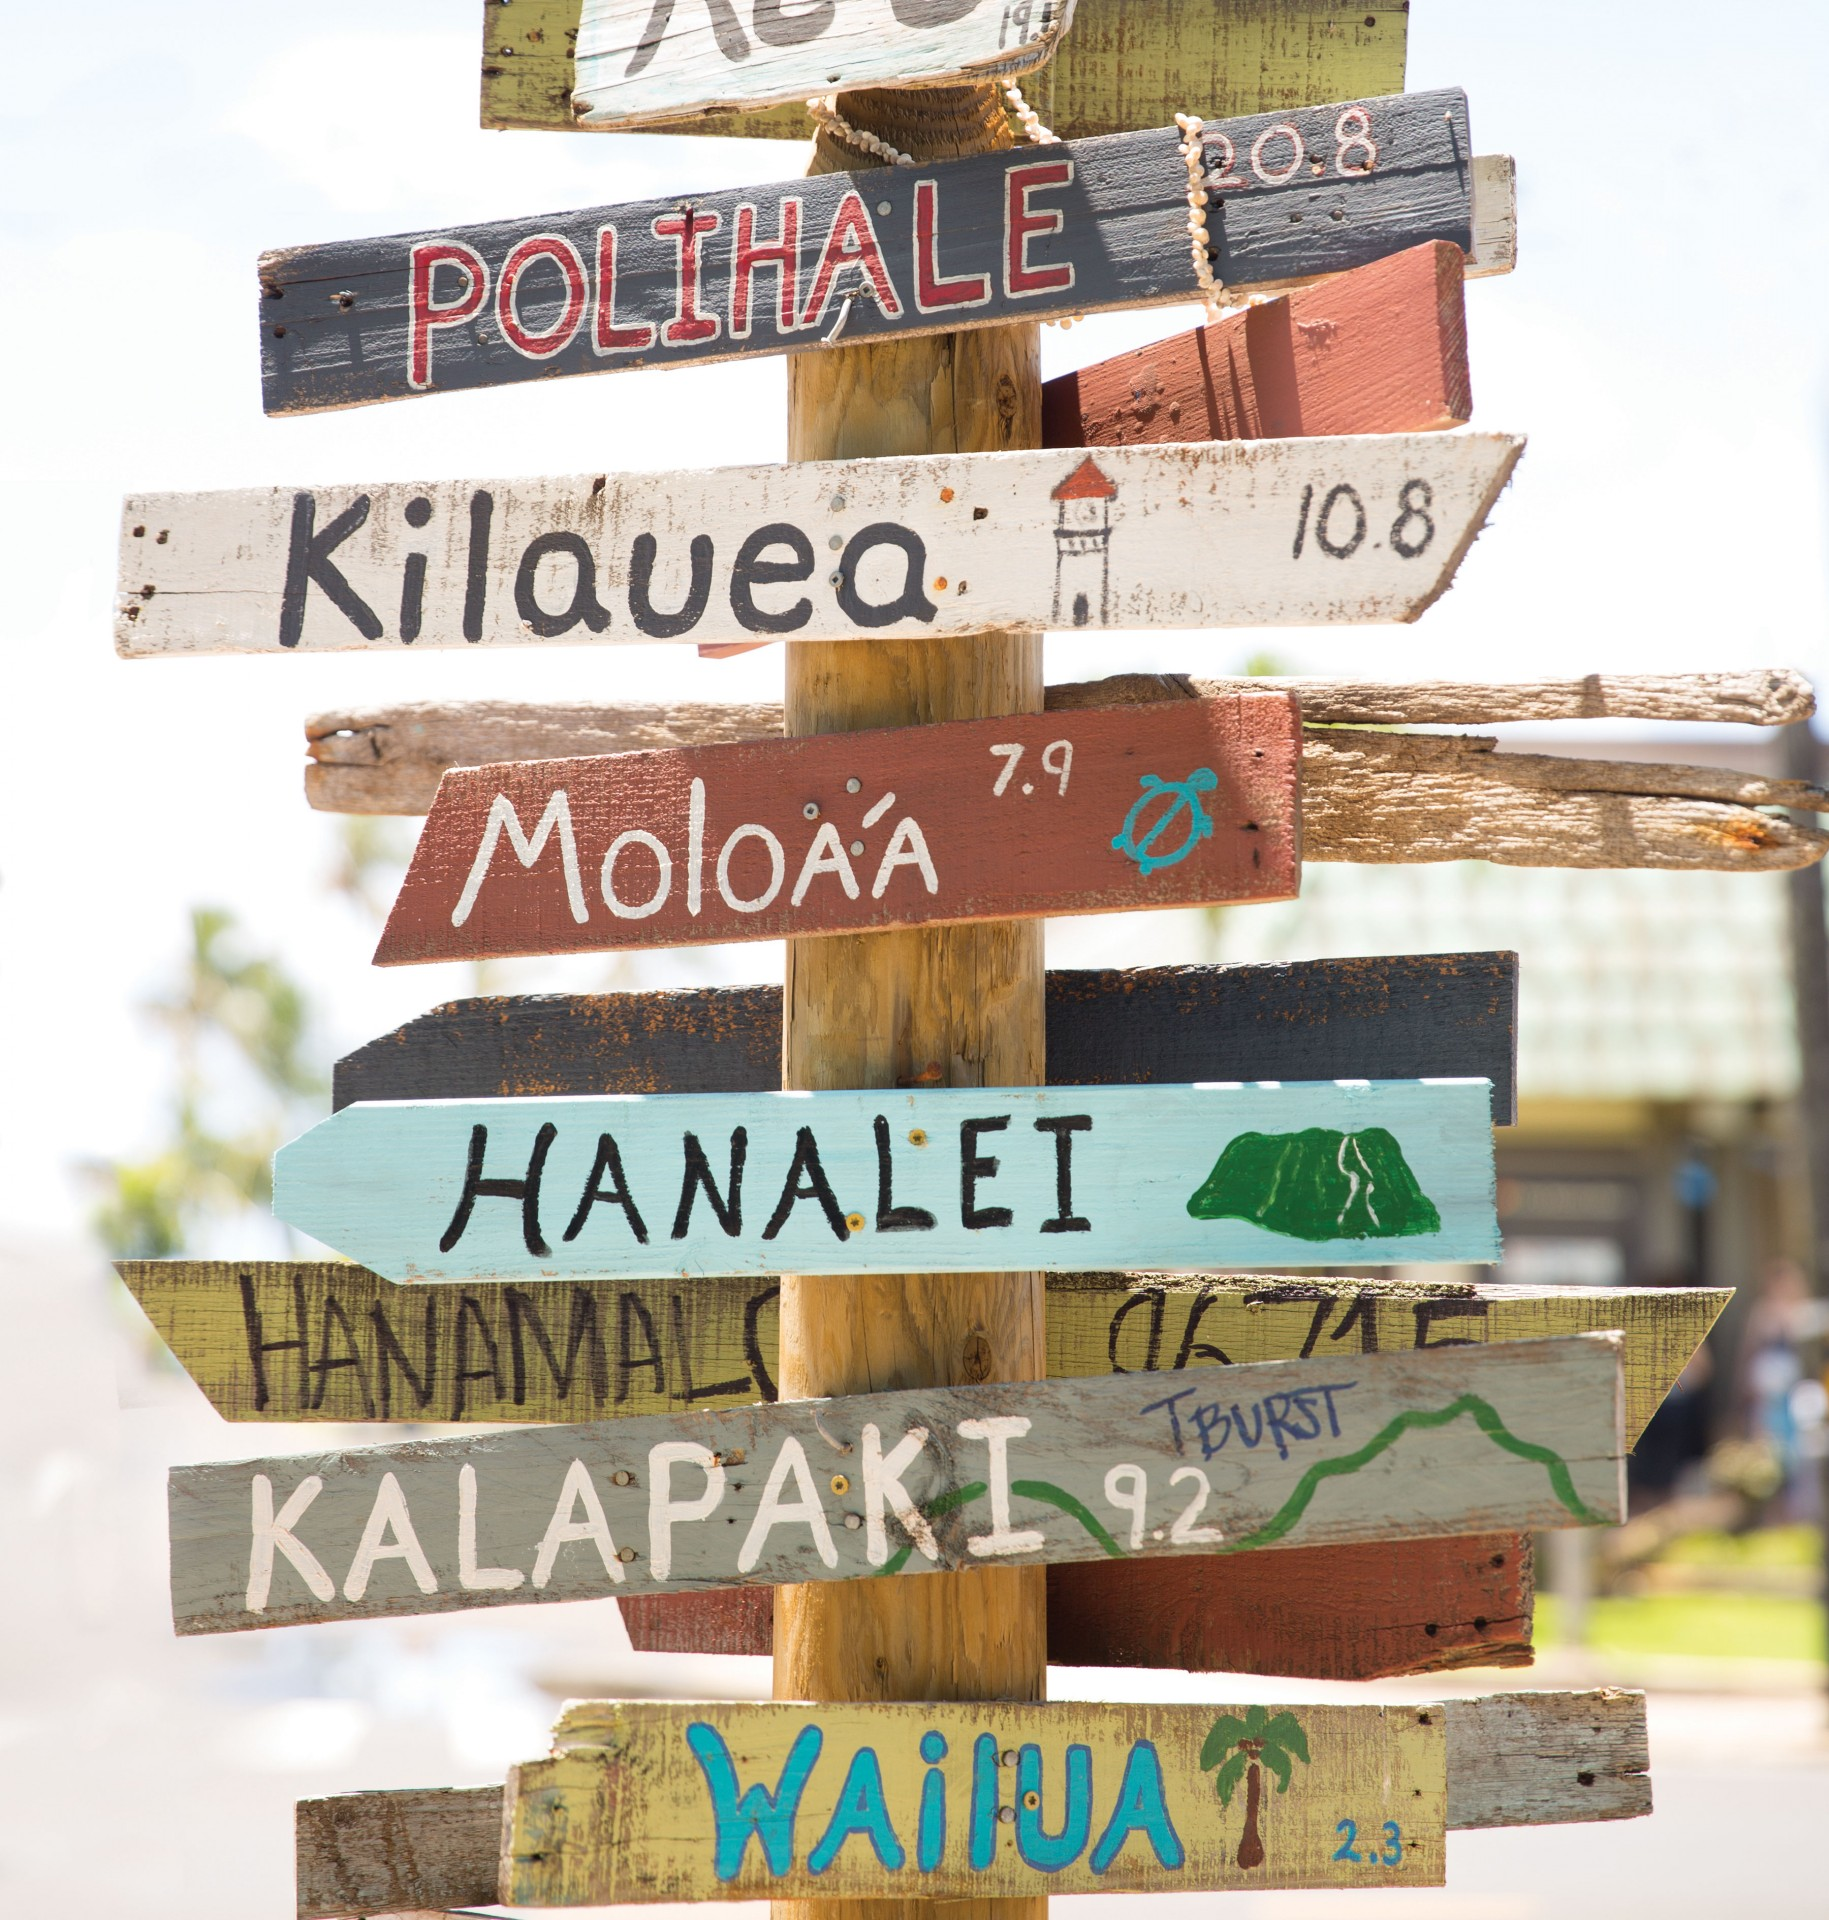 Vintage wooden sign post in Hawaii points the way to different beaches.